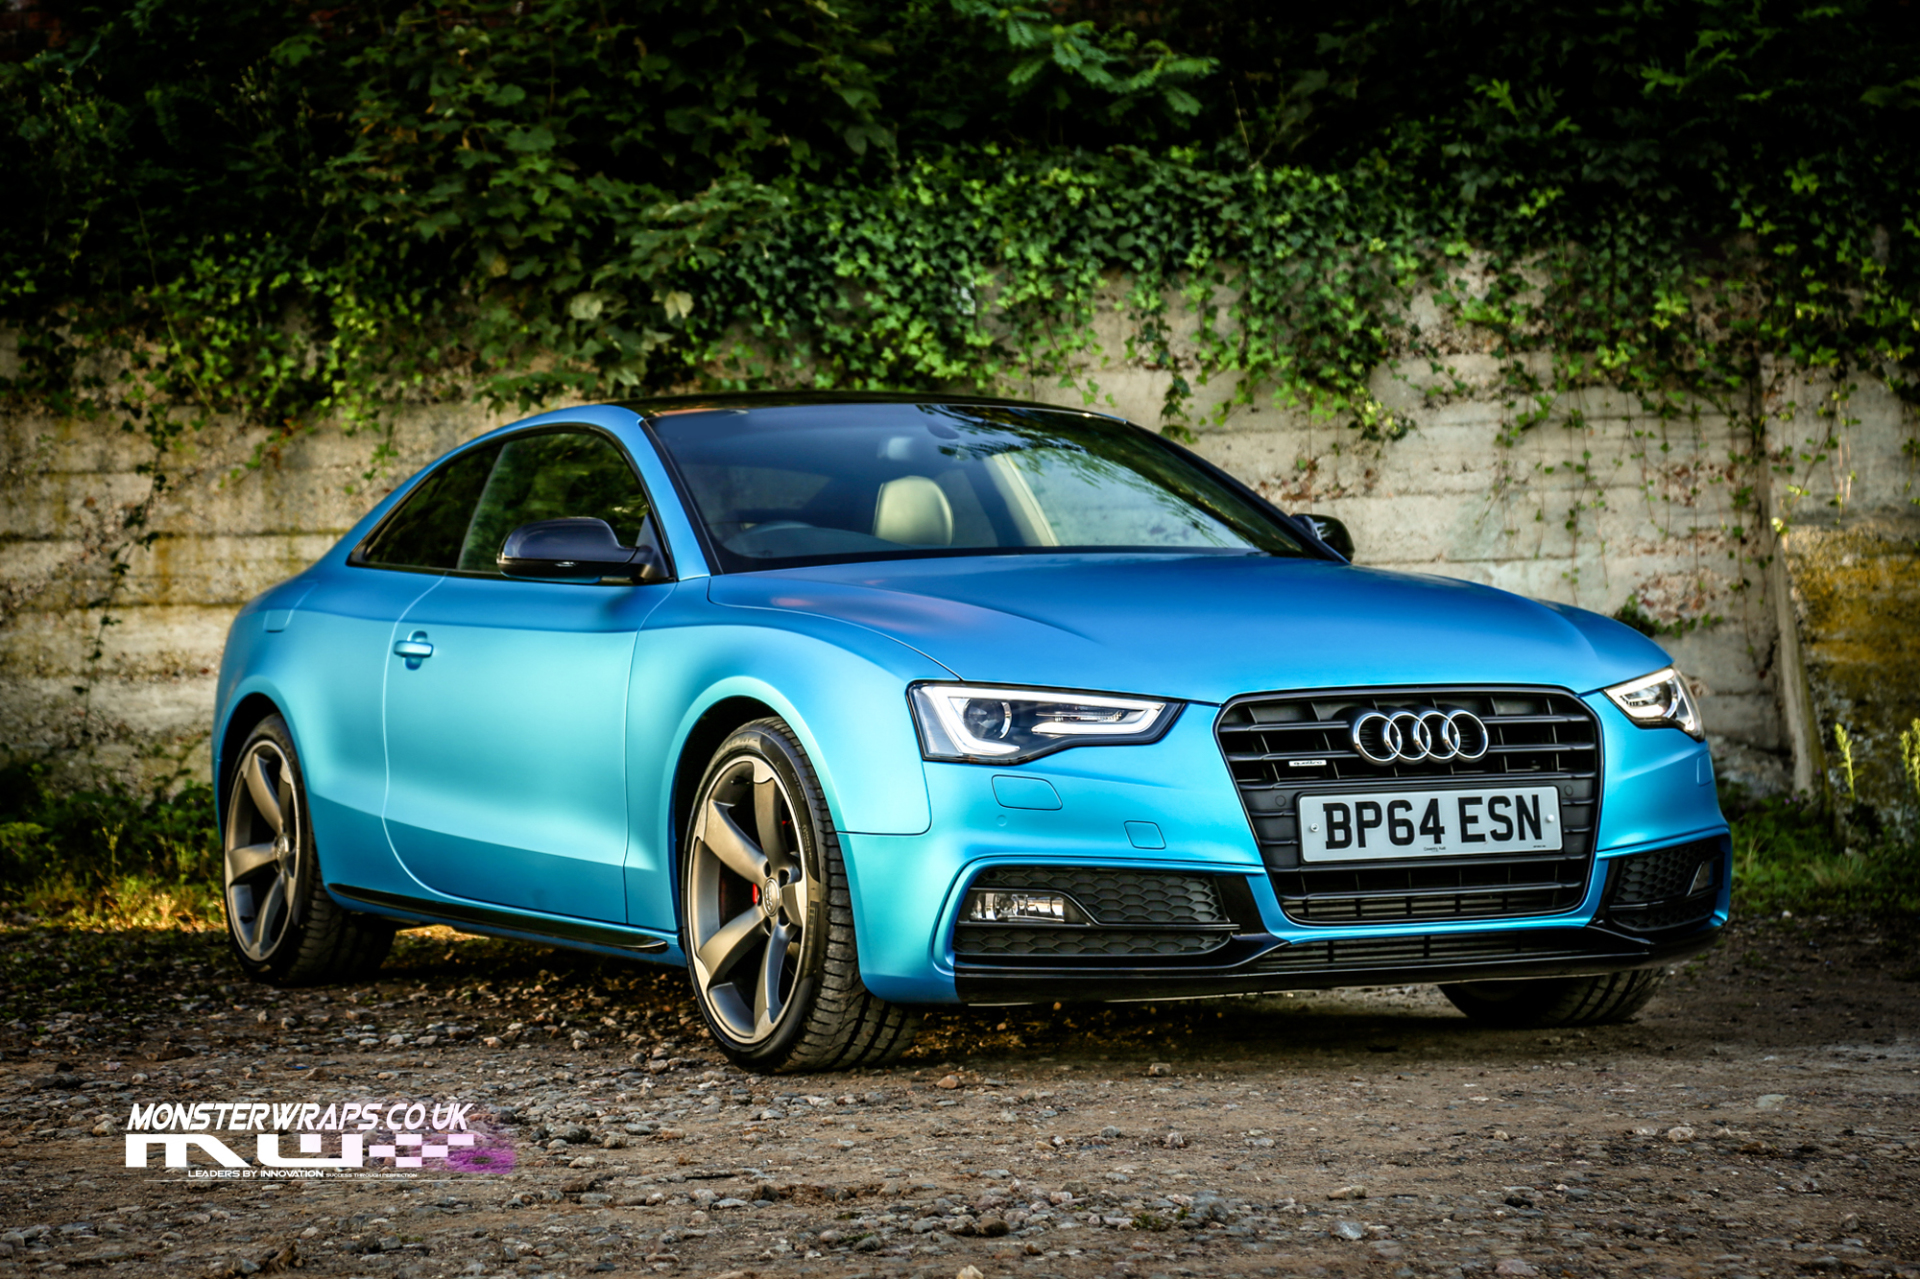 Audi A5 Satin Ocean Shimmer Blue Full Wrap Monsterwraps